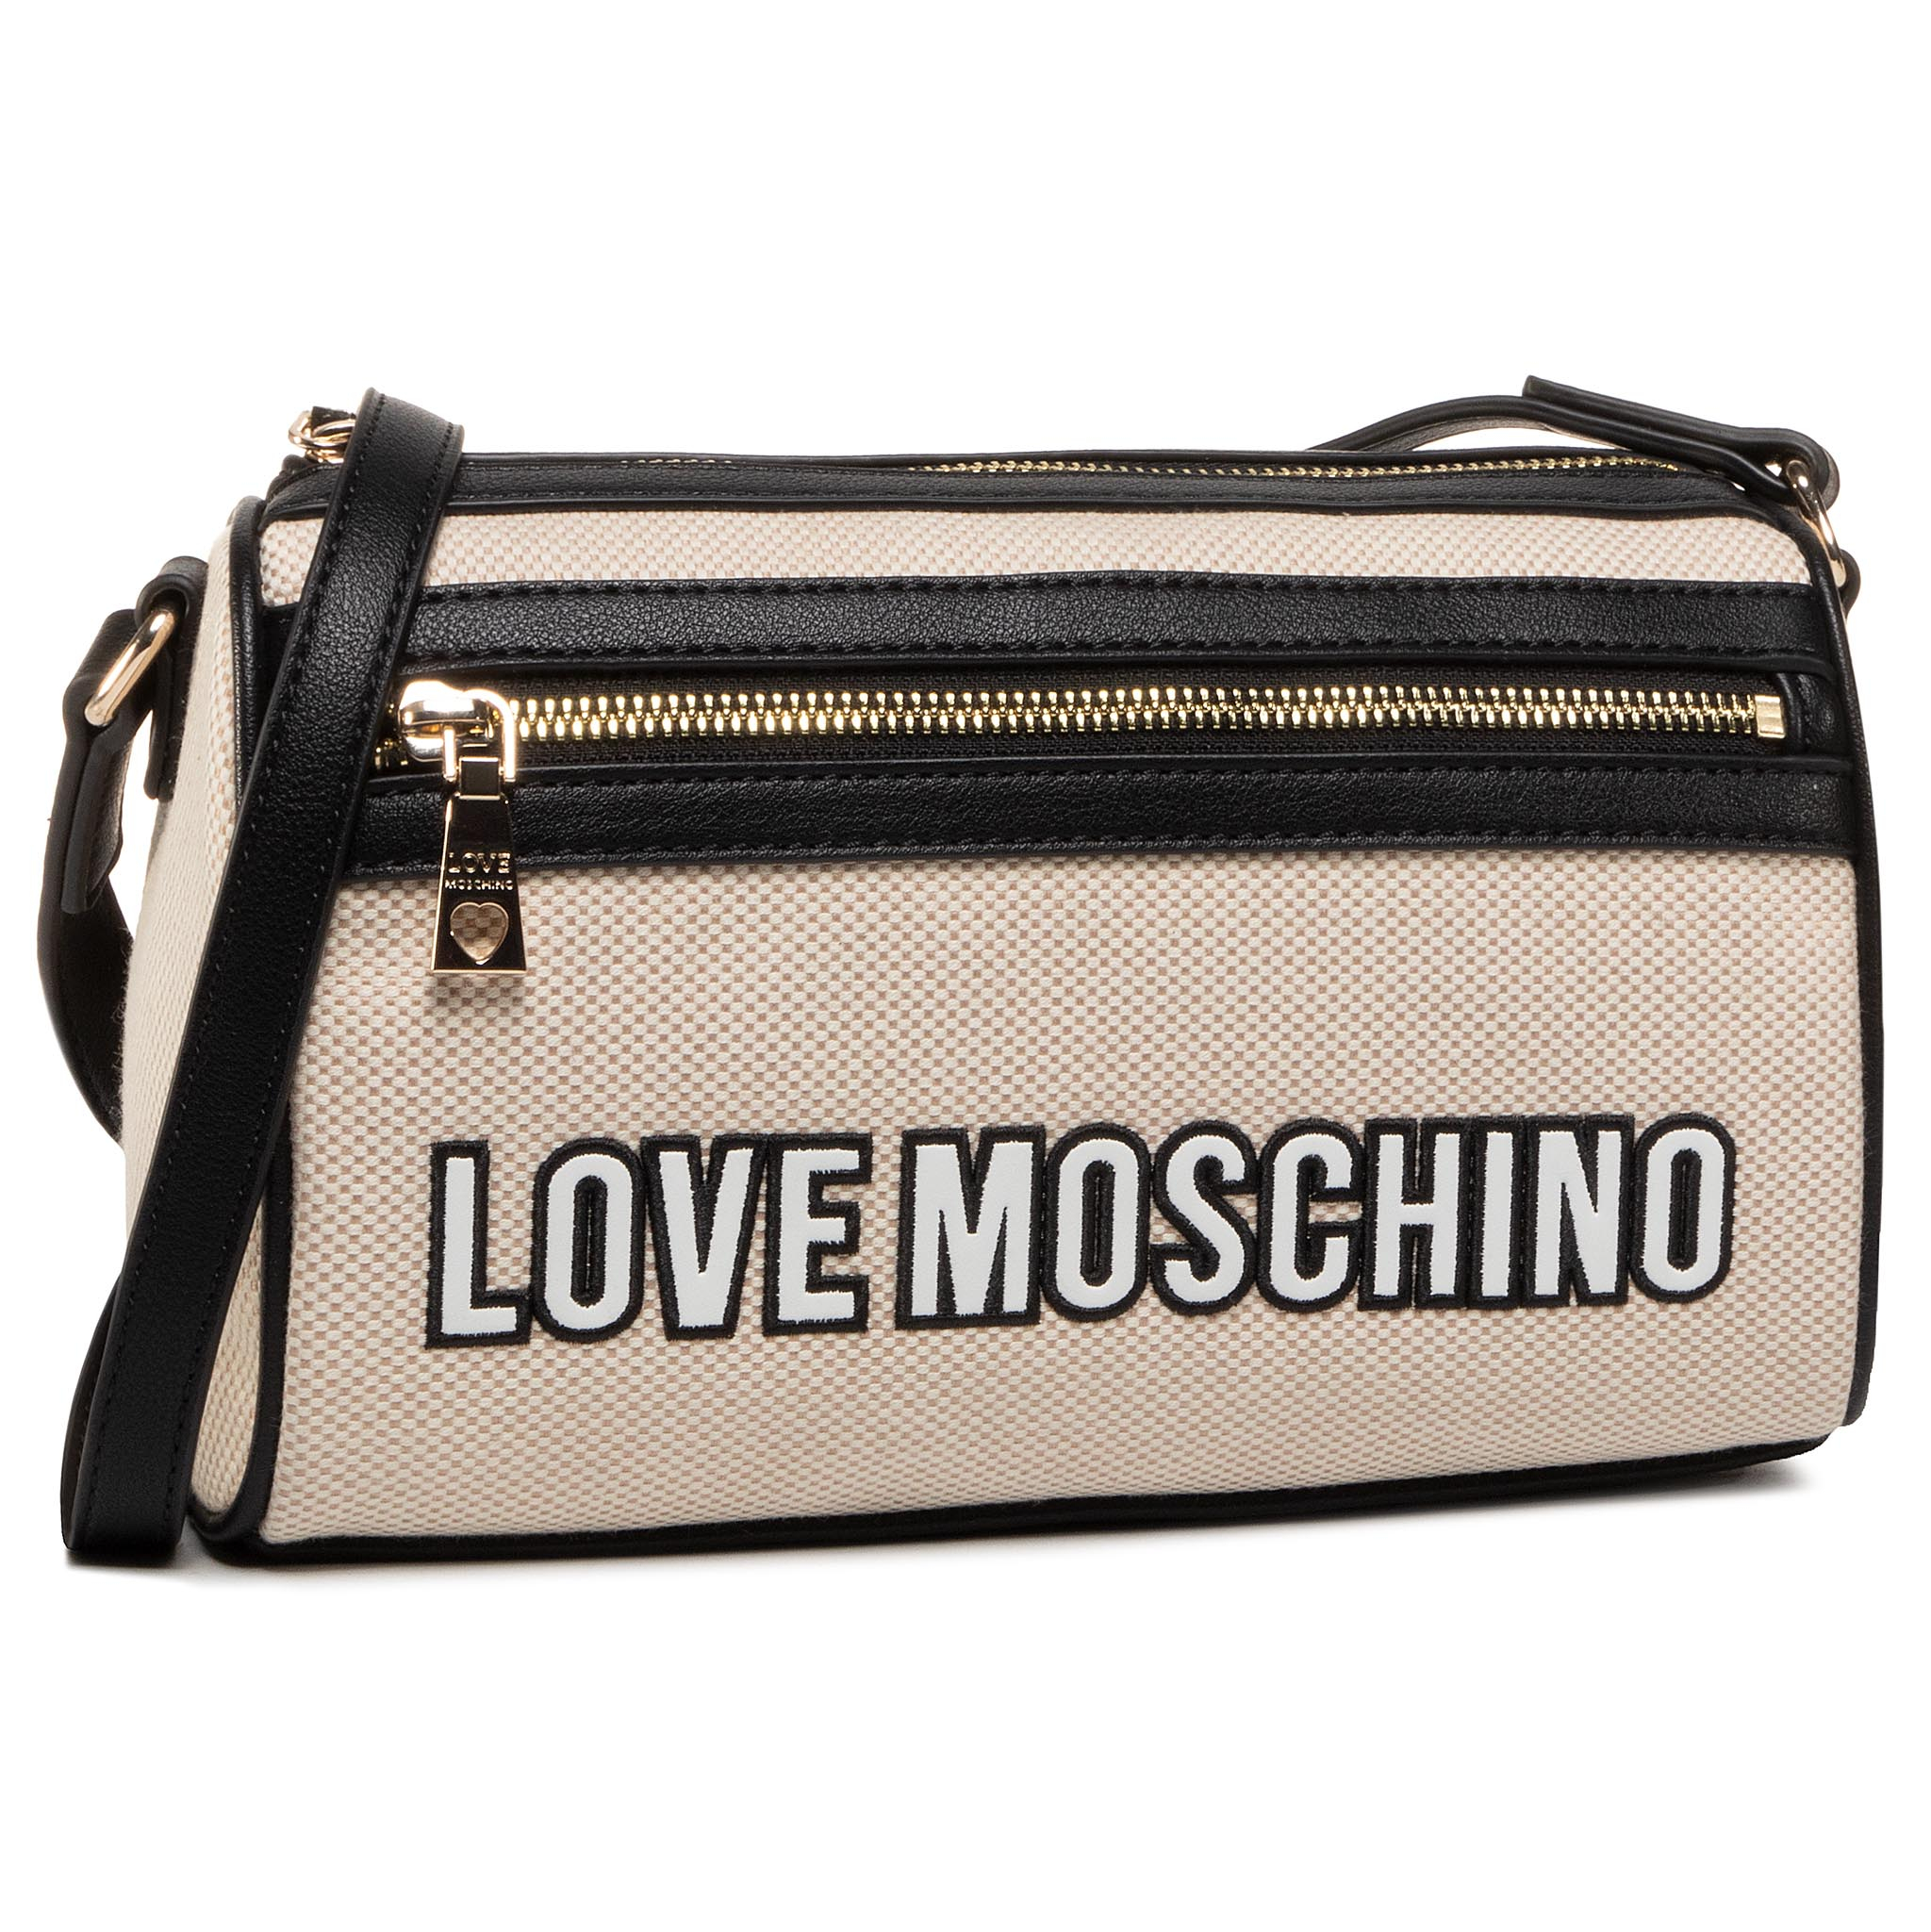 Geantă LOVE MOSCHINO - JC4230PP0AKF110A Bia/Ner